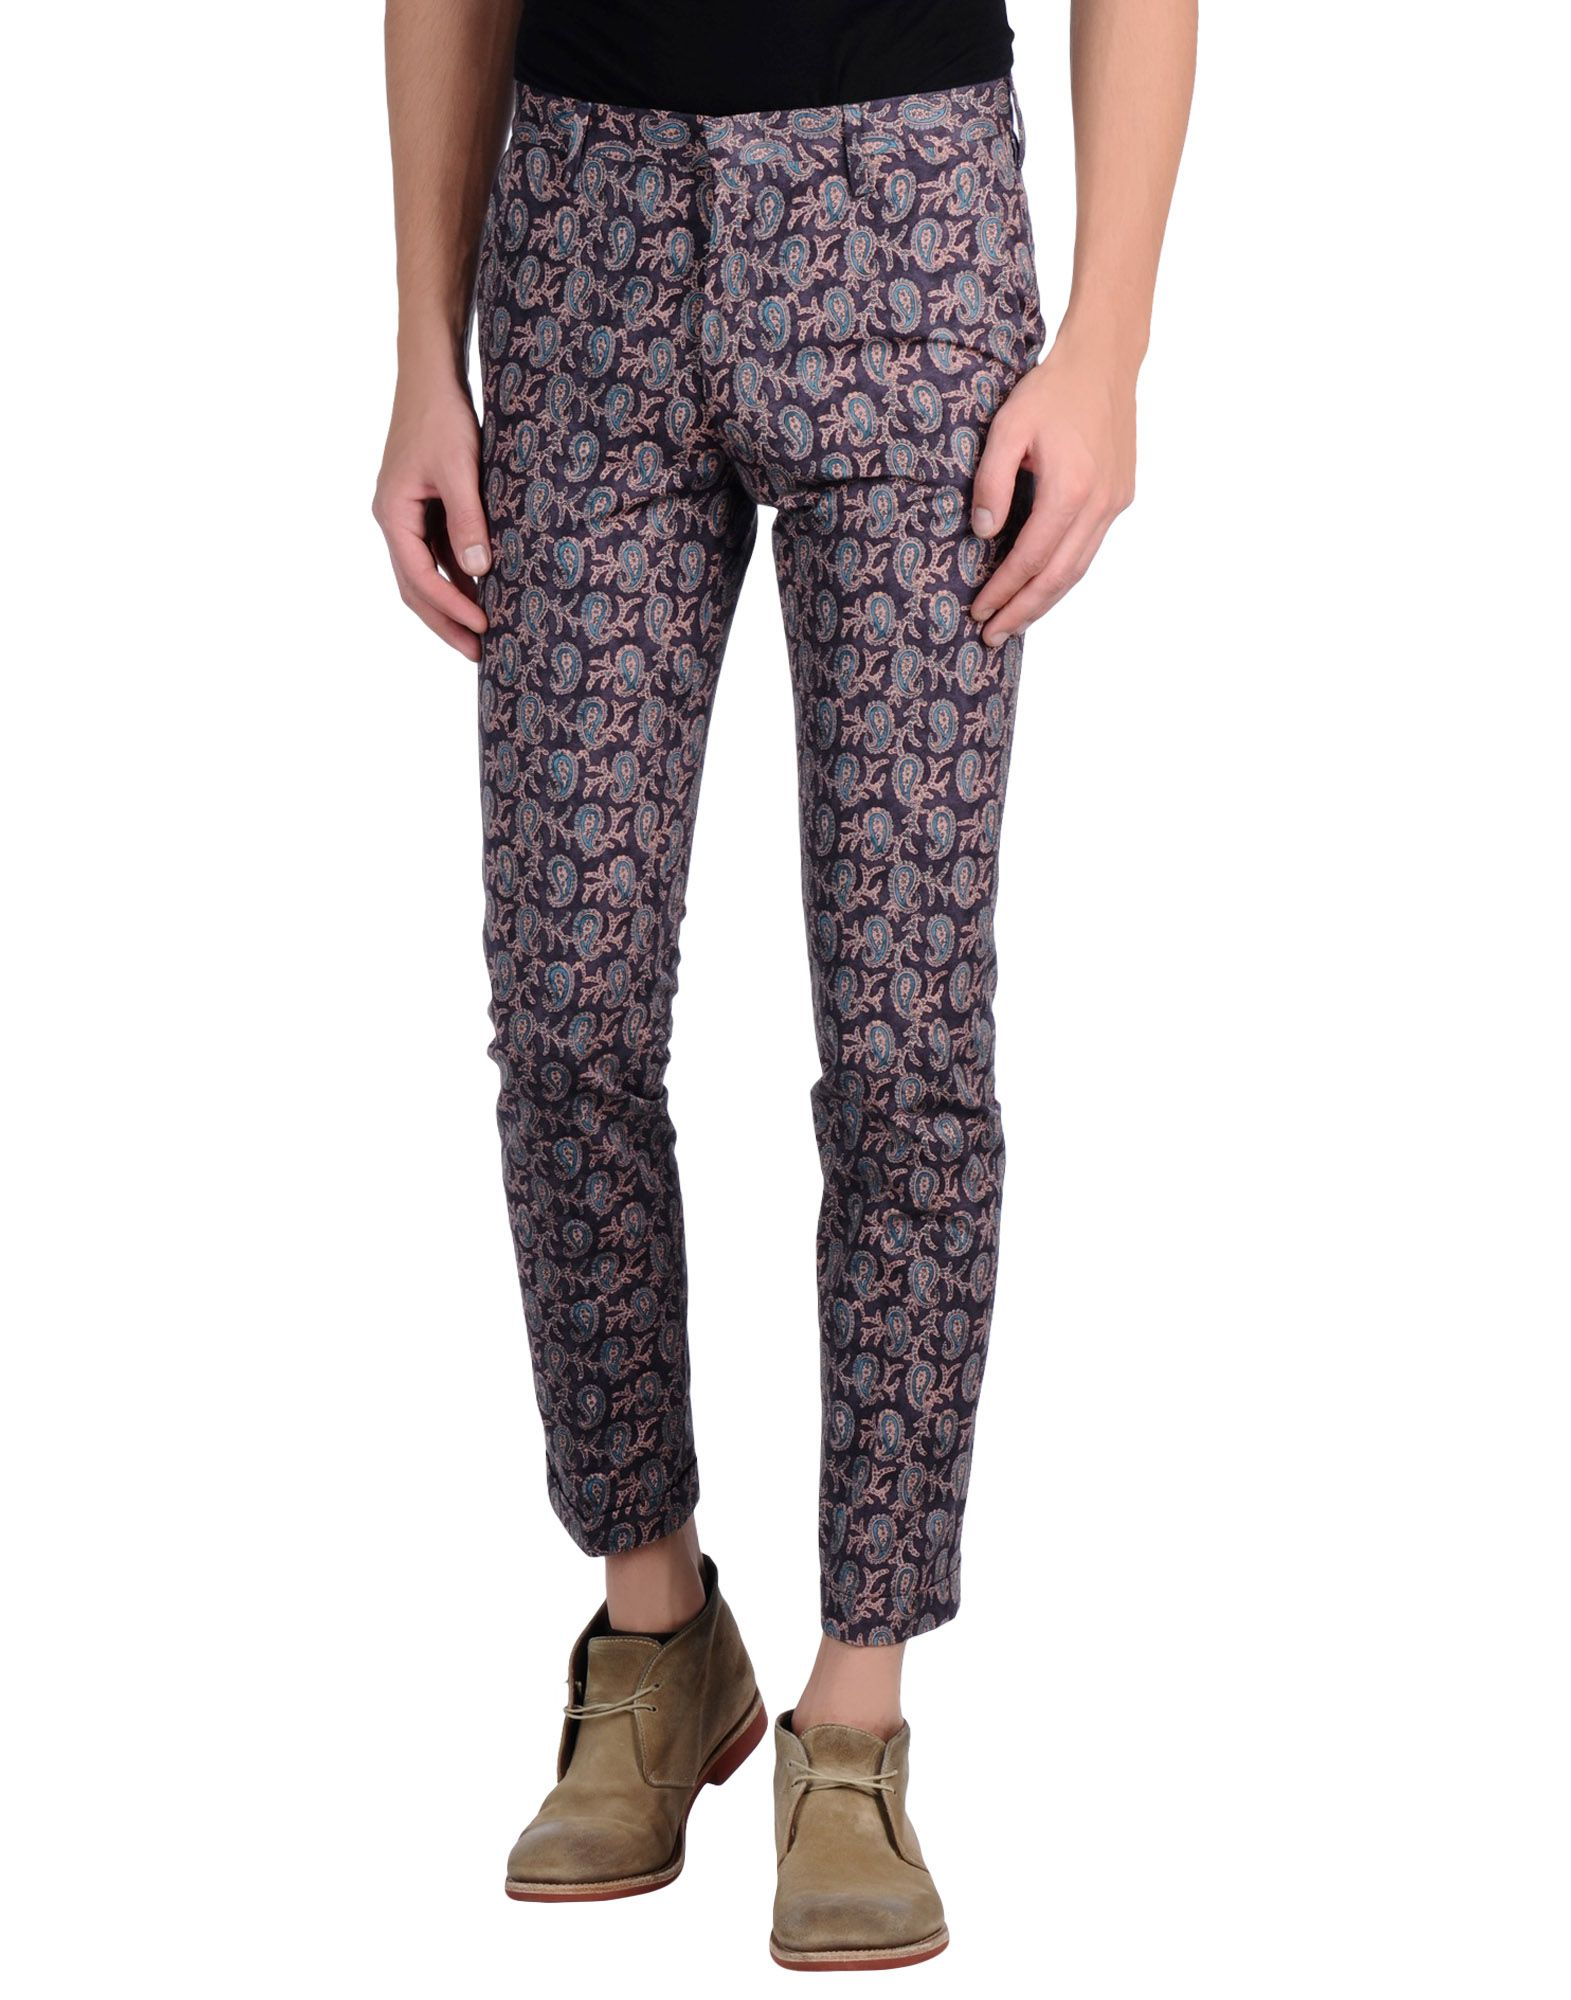 Pantalone Paul Smith Uomo - Acquista online su